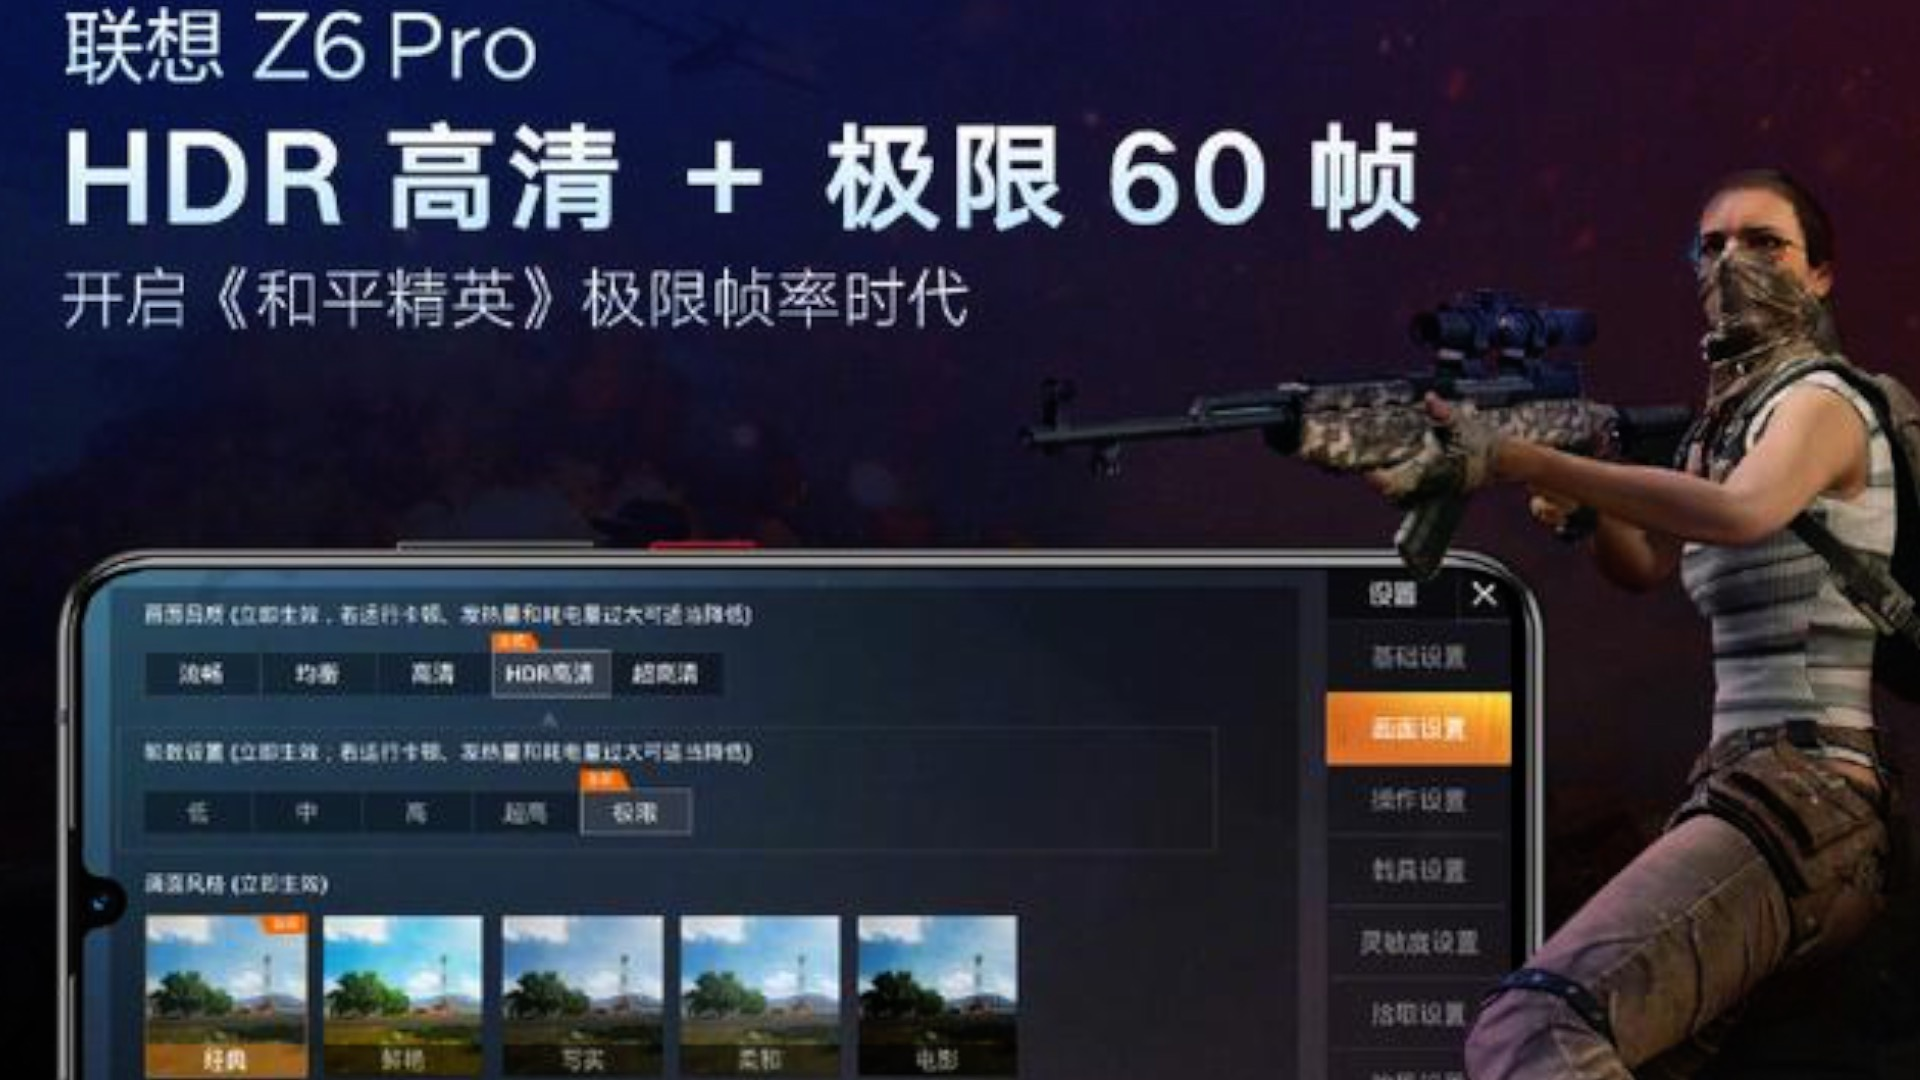 Lenovo Z6 Pro: HDR to 60 fps on the Chinese version of PUBG